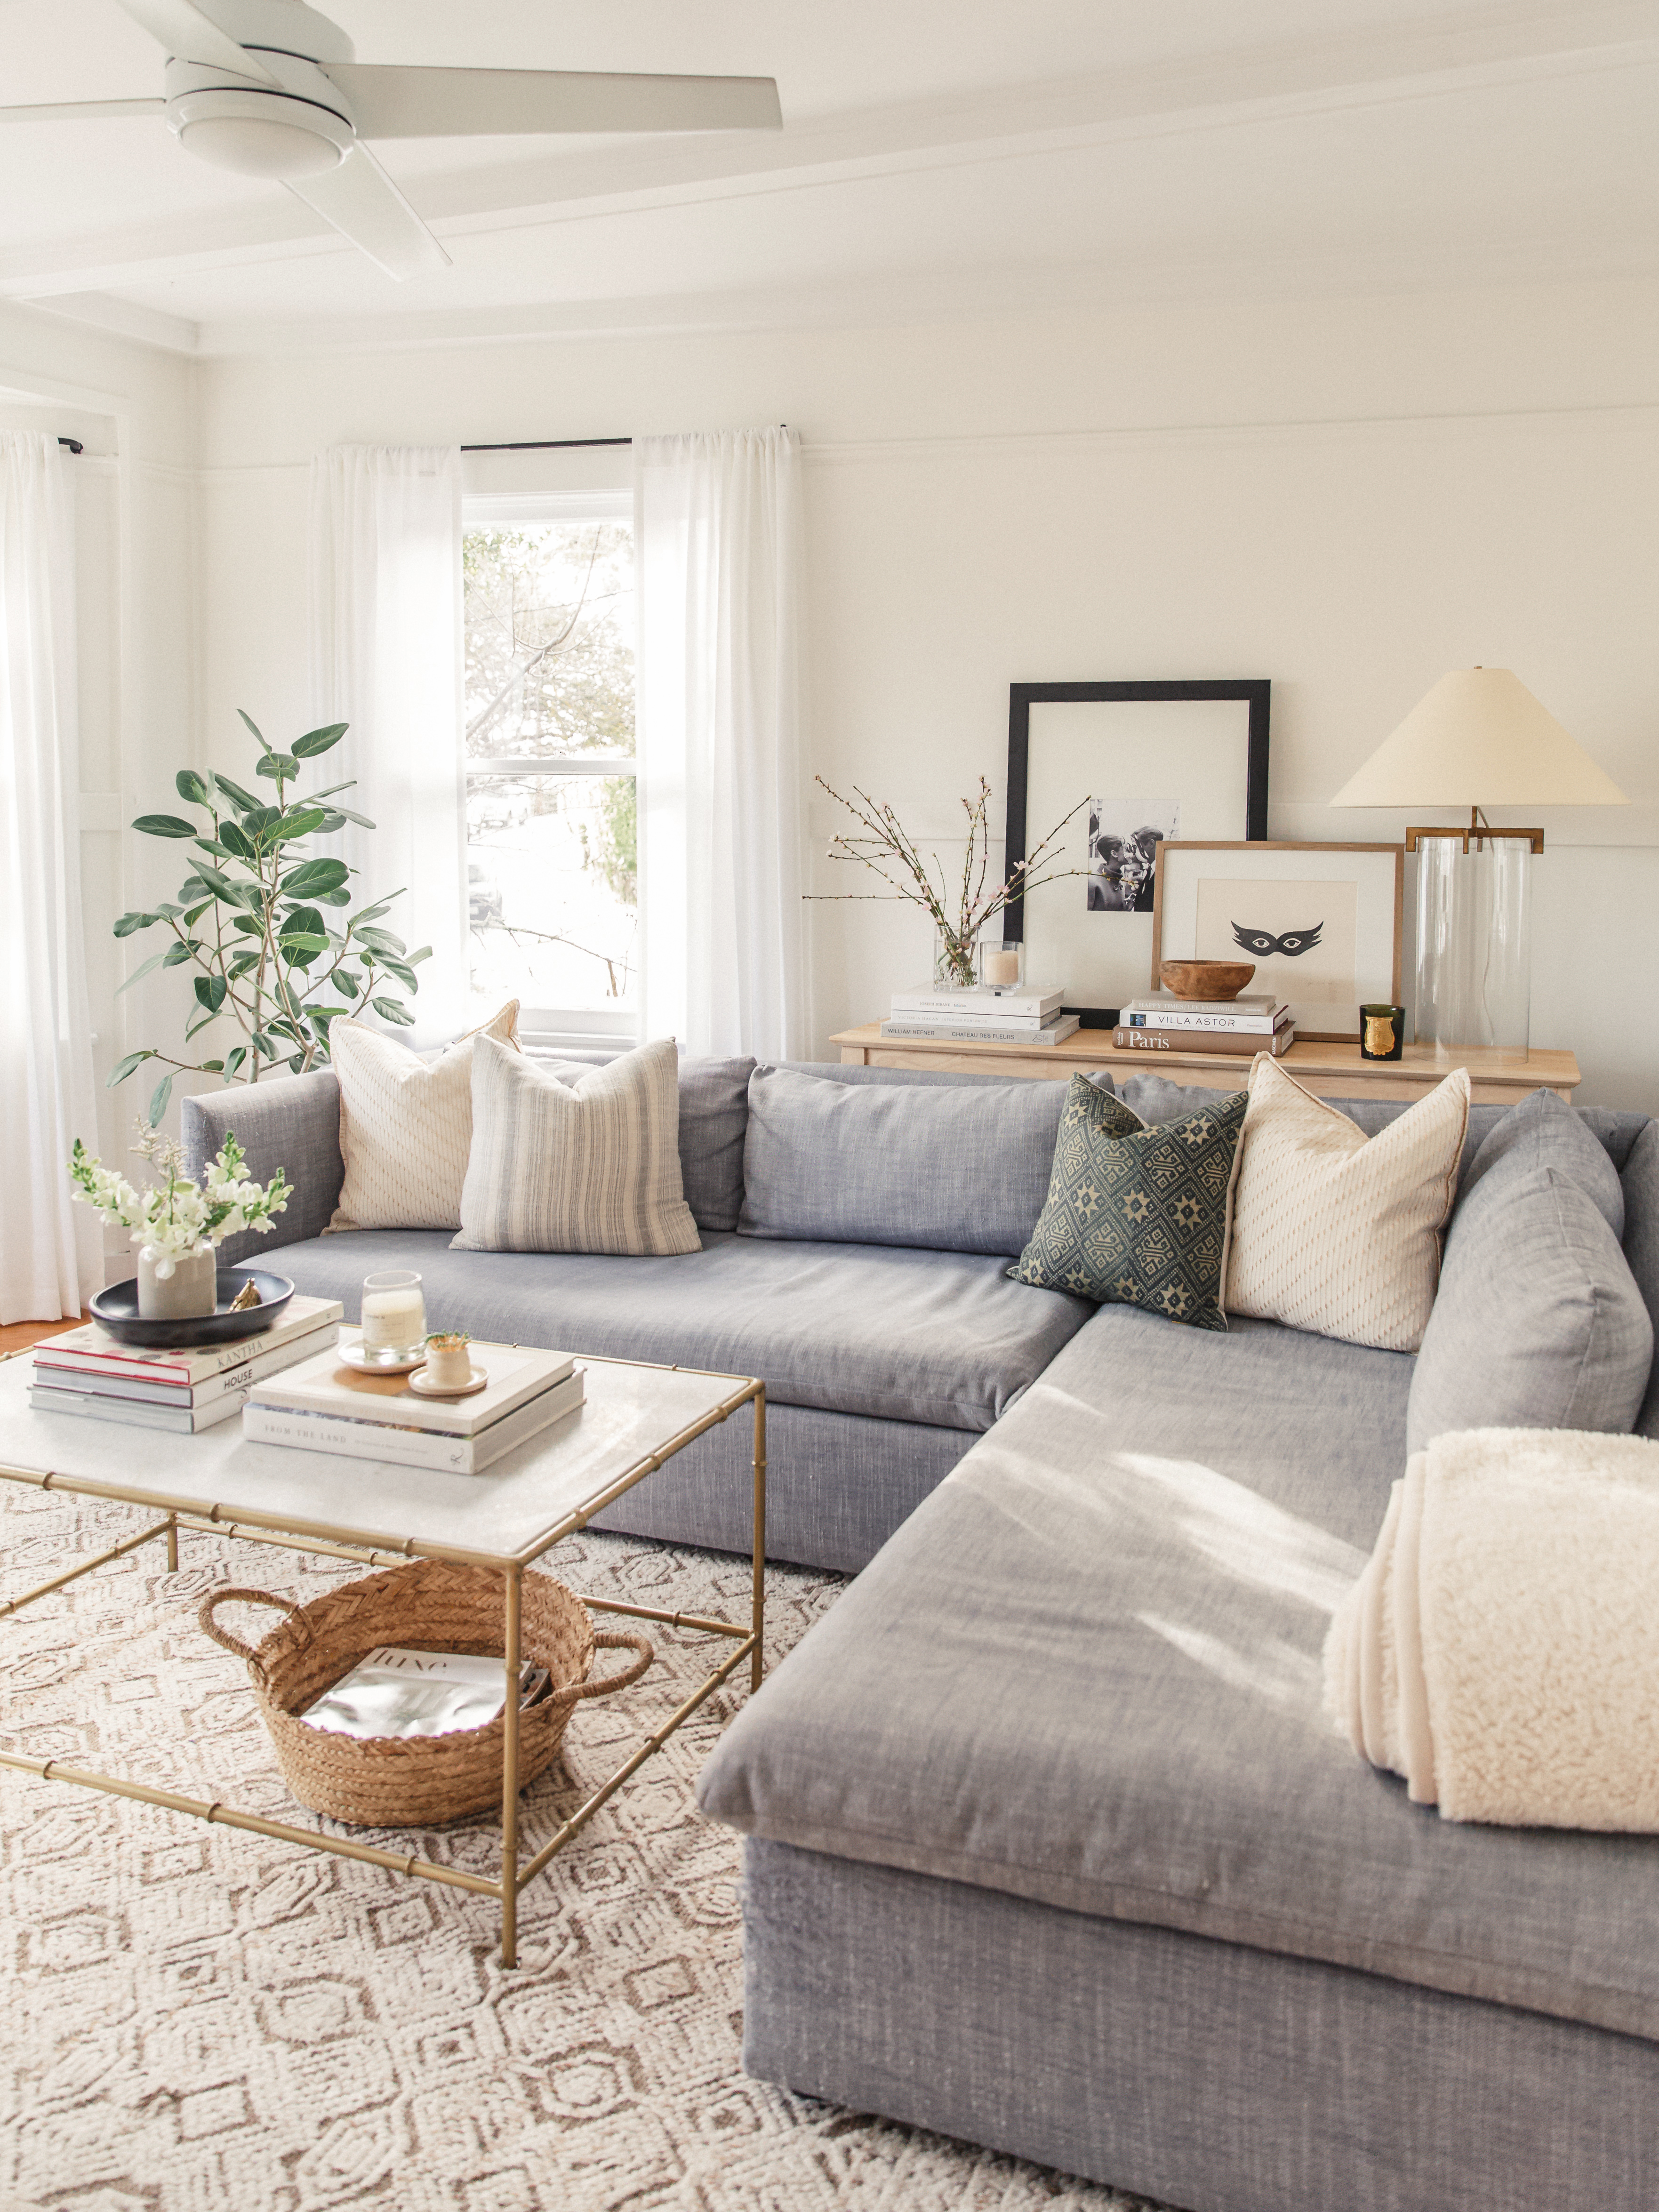 Small Living Room Decor Ideas That'll Open up Your Space on Small Room Decoration  id=25723